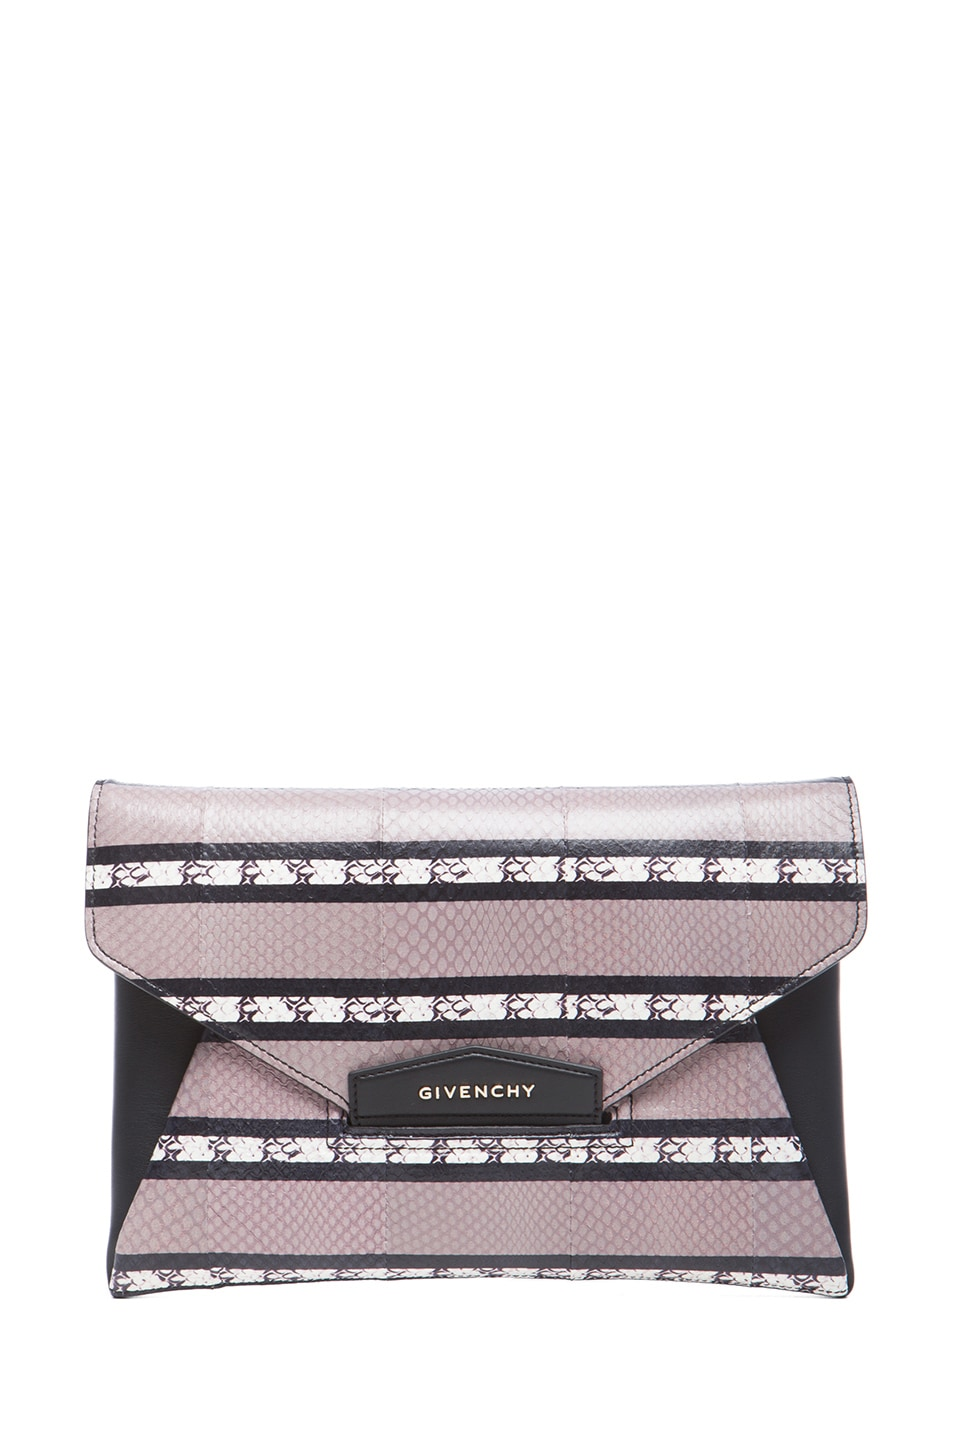 Image 1 of GIVENCHY Medium Ayers Antigona Envelope Clutch in Beige Stripe